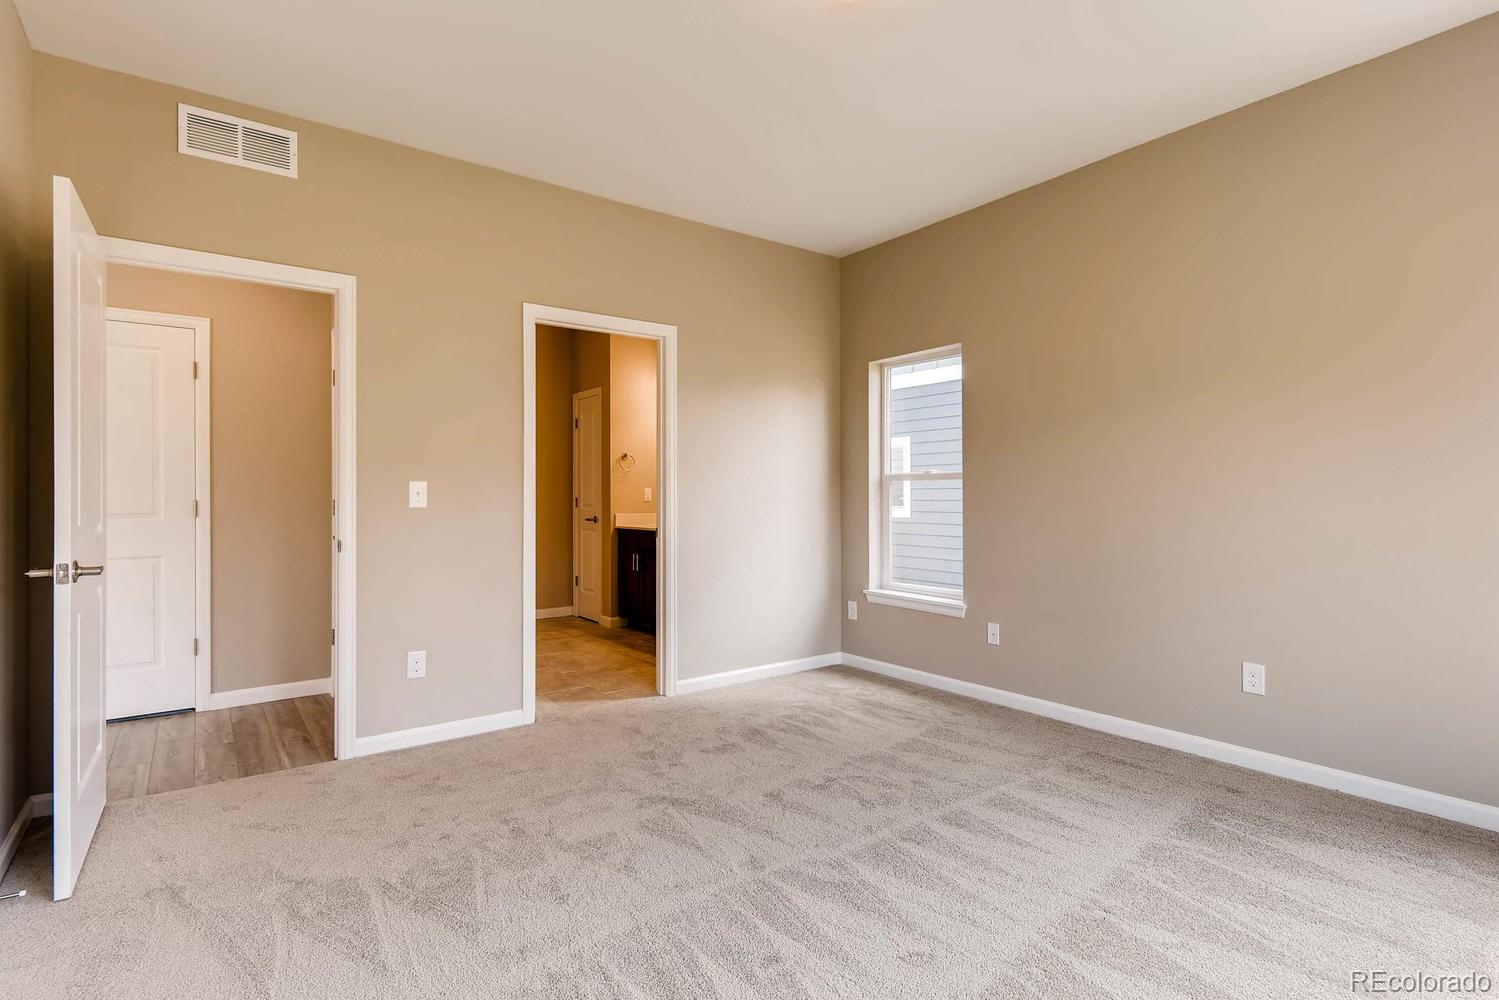 Home Staging Metz 7903 shoshone street, denver, co 80221, clear lake estates/sherrelwood  estates - sold listing, mls # 9539443 | pink realty